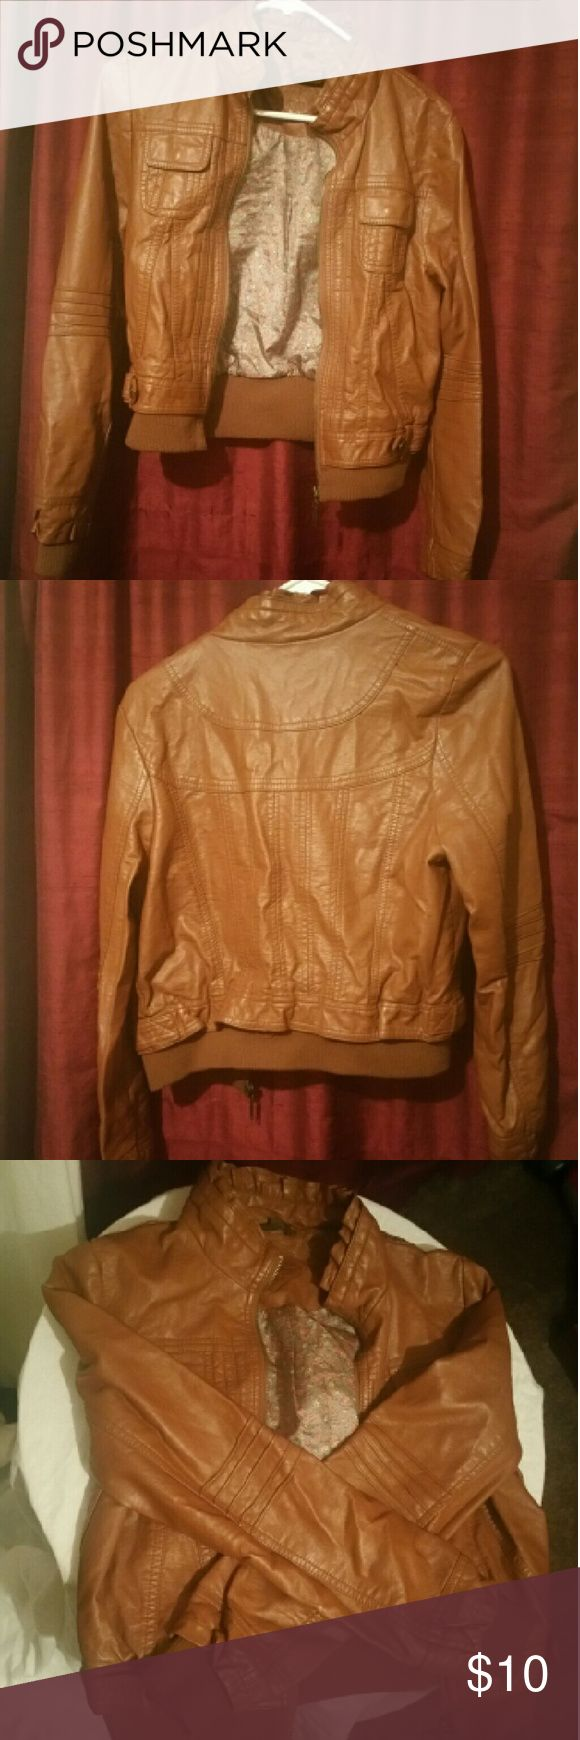 Tan leather jacket Tan short leather jacket. Good condition almost like new! Perfect for fall. Size M Jou Jou Jackets & Coats